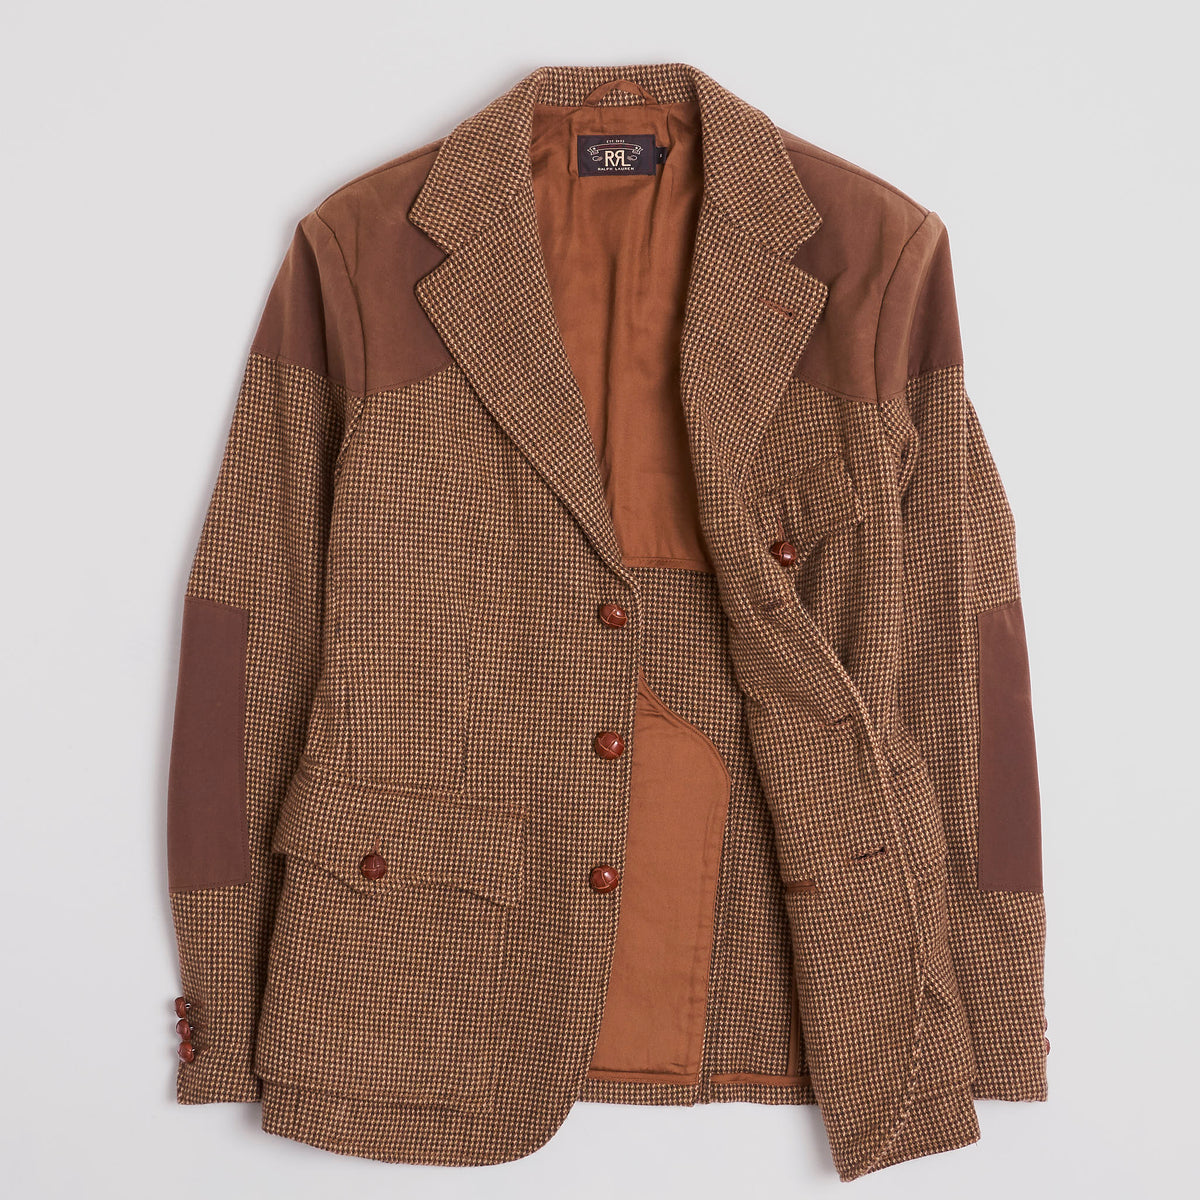 Double RL Wool Sportcoat